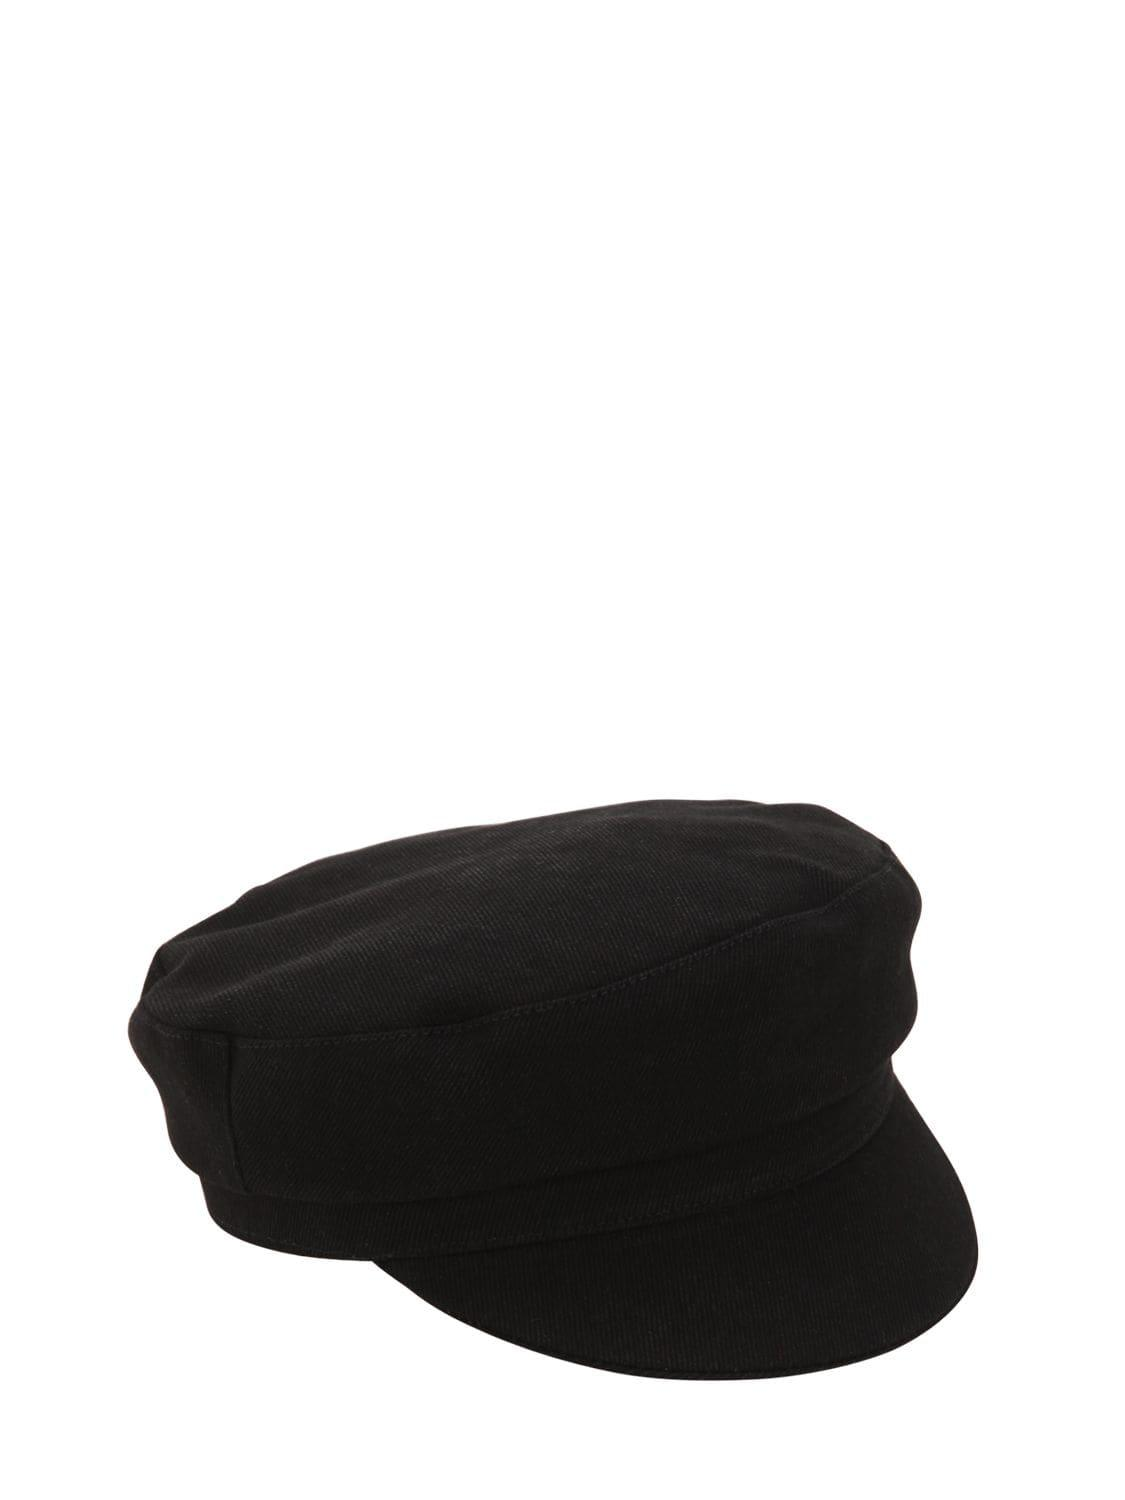 Isabel Marant - Black Cotton Captain s Hat - Lyst. View fullscreen 2ded35117085